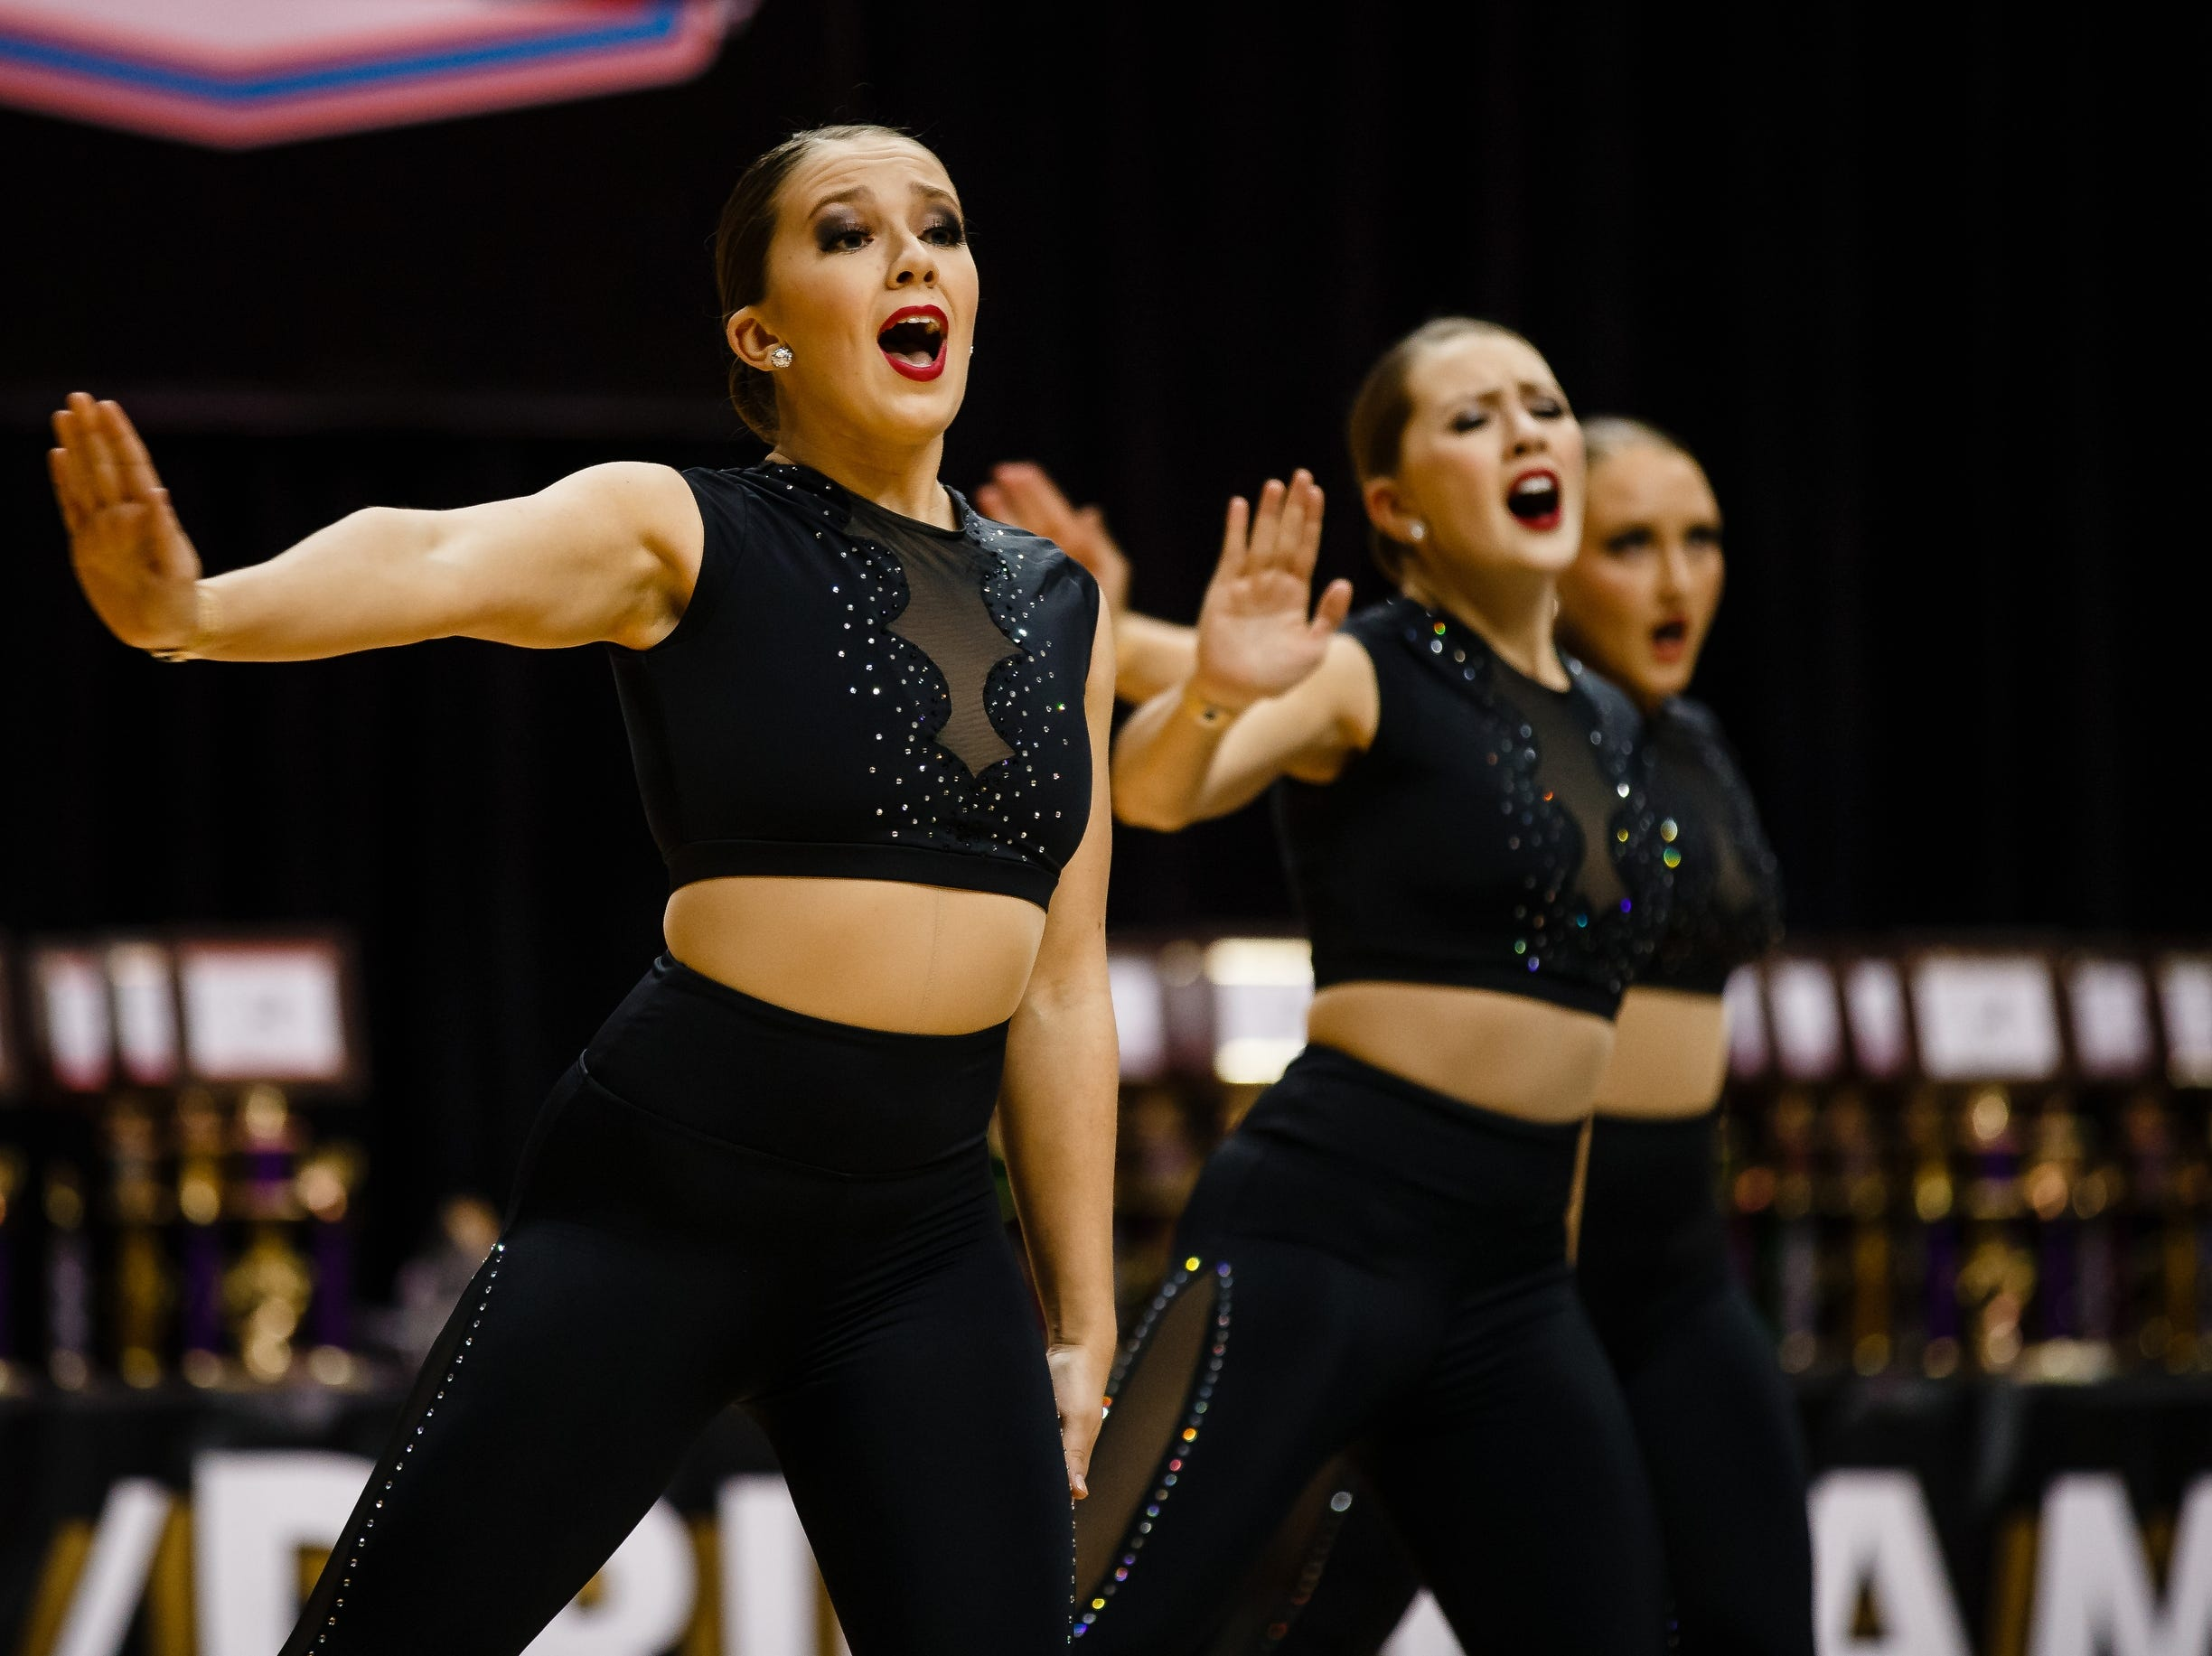 Grandview University dancers perform during the Iowa Dance State Championships at Wells Fargo Arena on Friday, Nov. 30, 2018, in Des Moines.